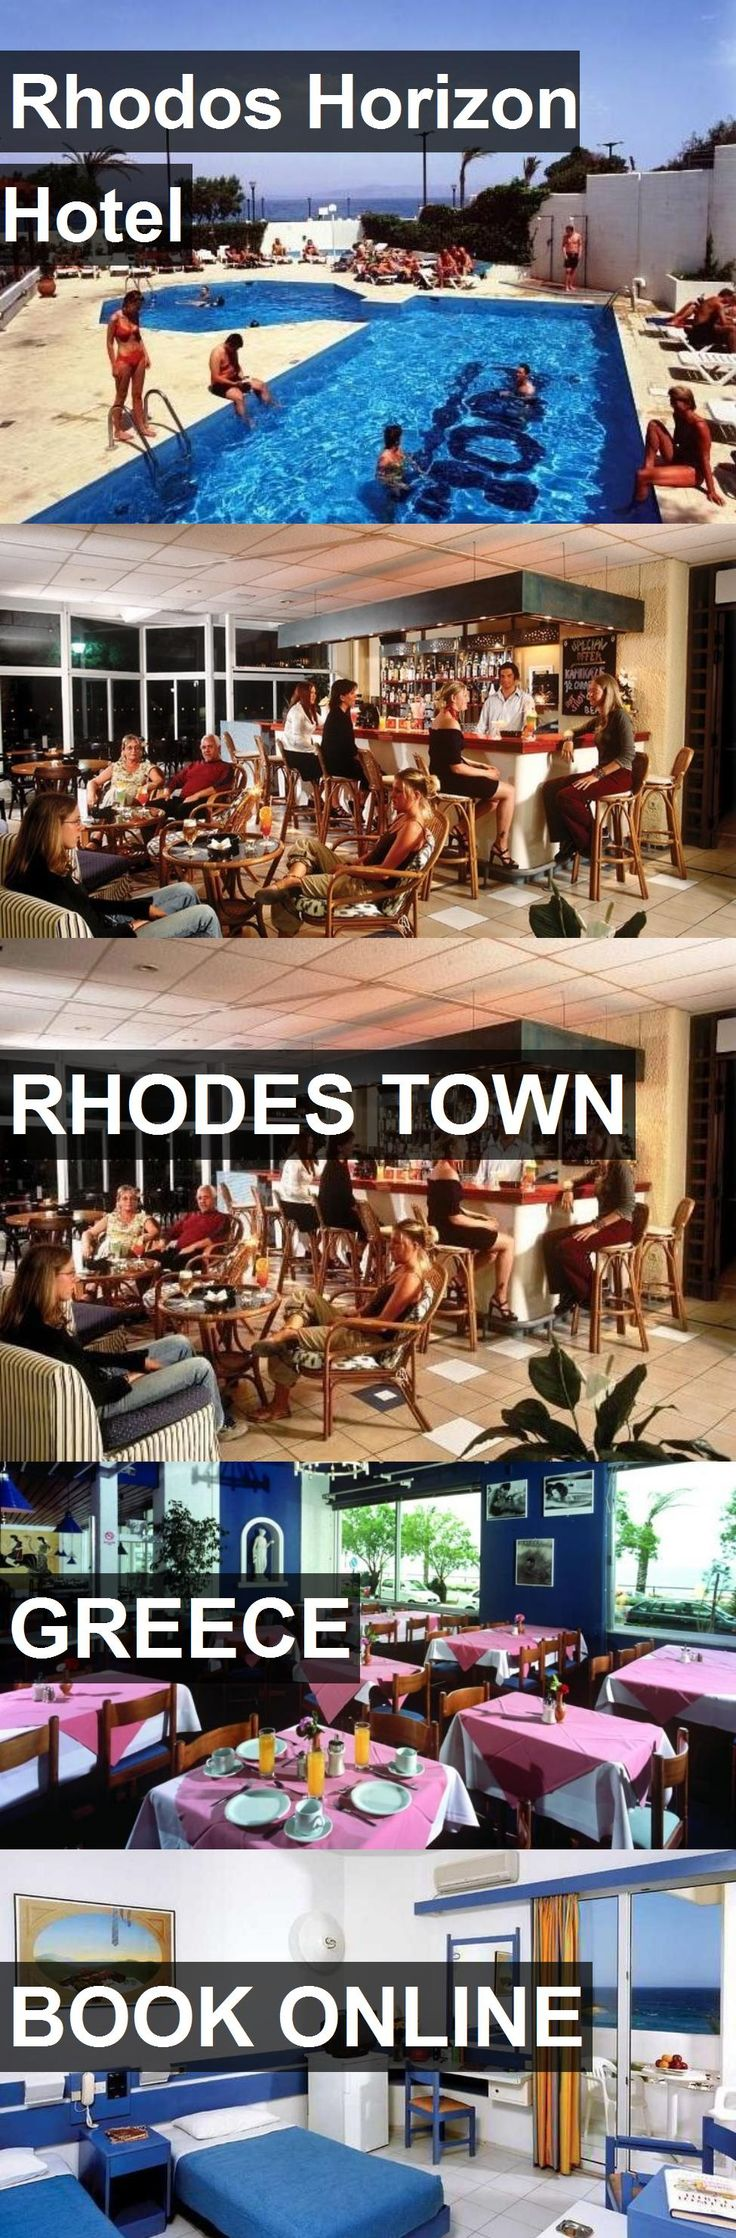 Hotel Rhodos Horizon Hotel in Rhodes Town, Greece. For more information, photos, reviews and best prices please follow the link. #Greece #RhodesTown #RhodosHorizonHotel #hotel #travel #vacation